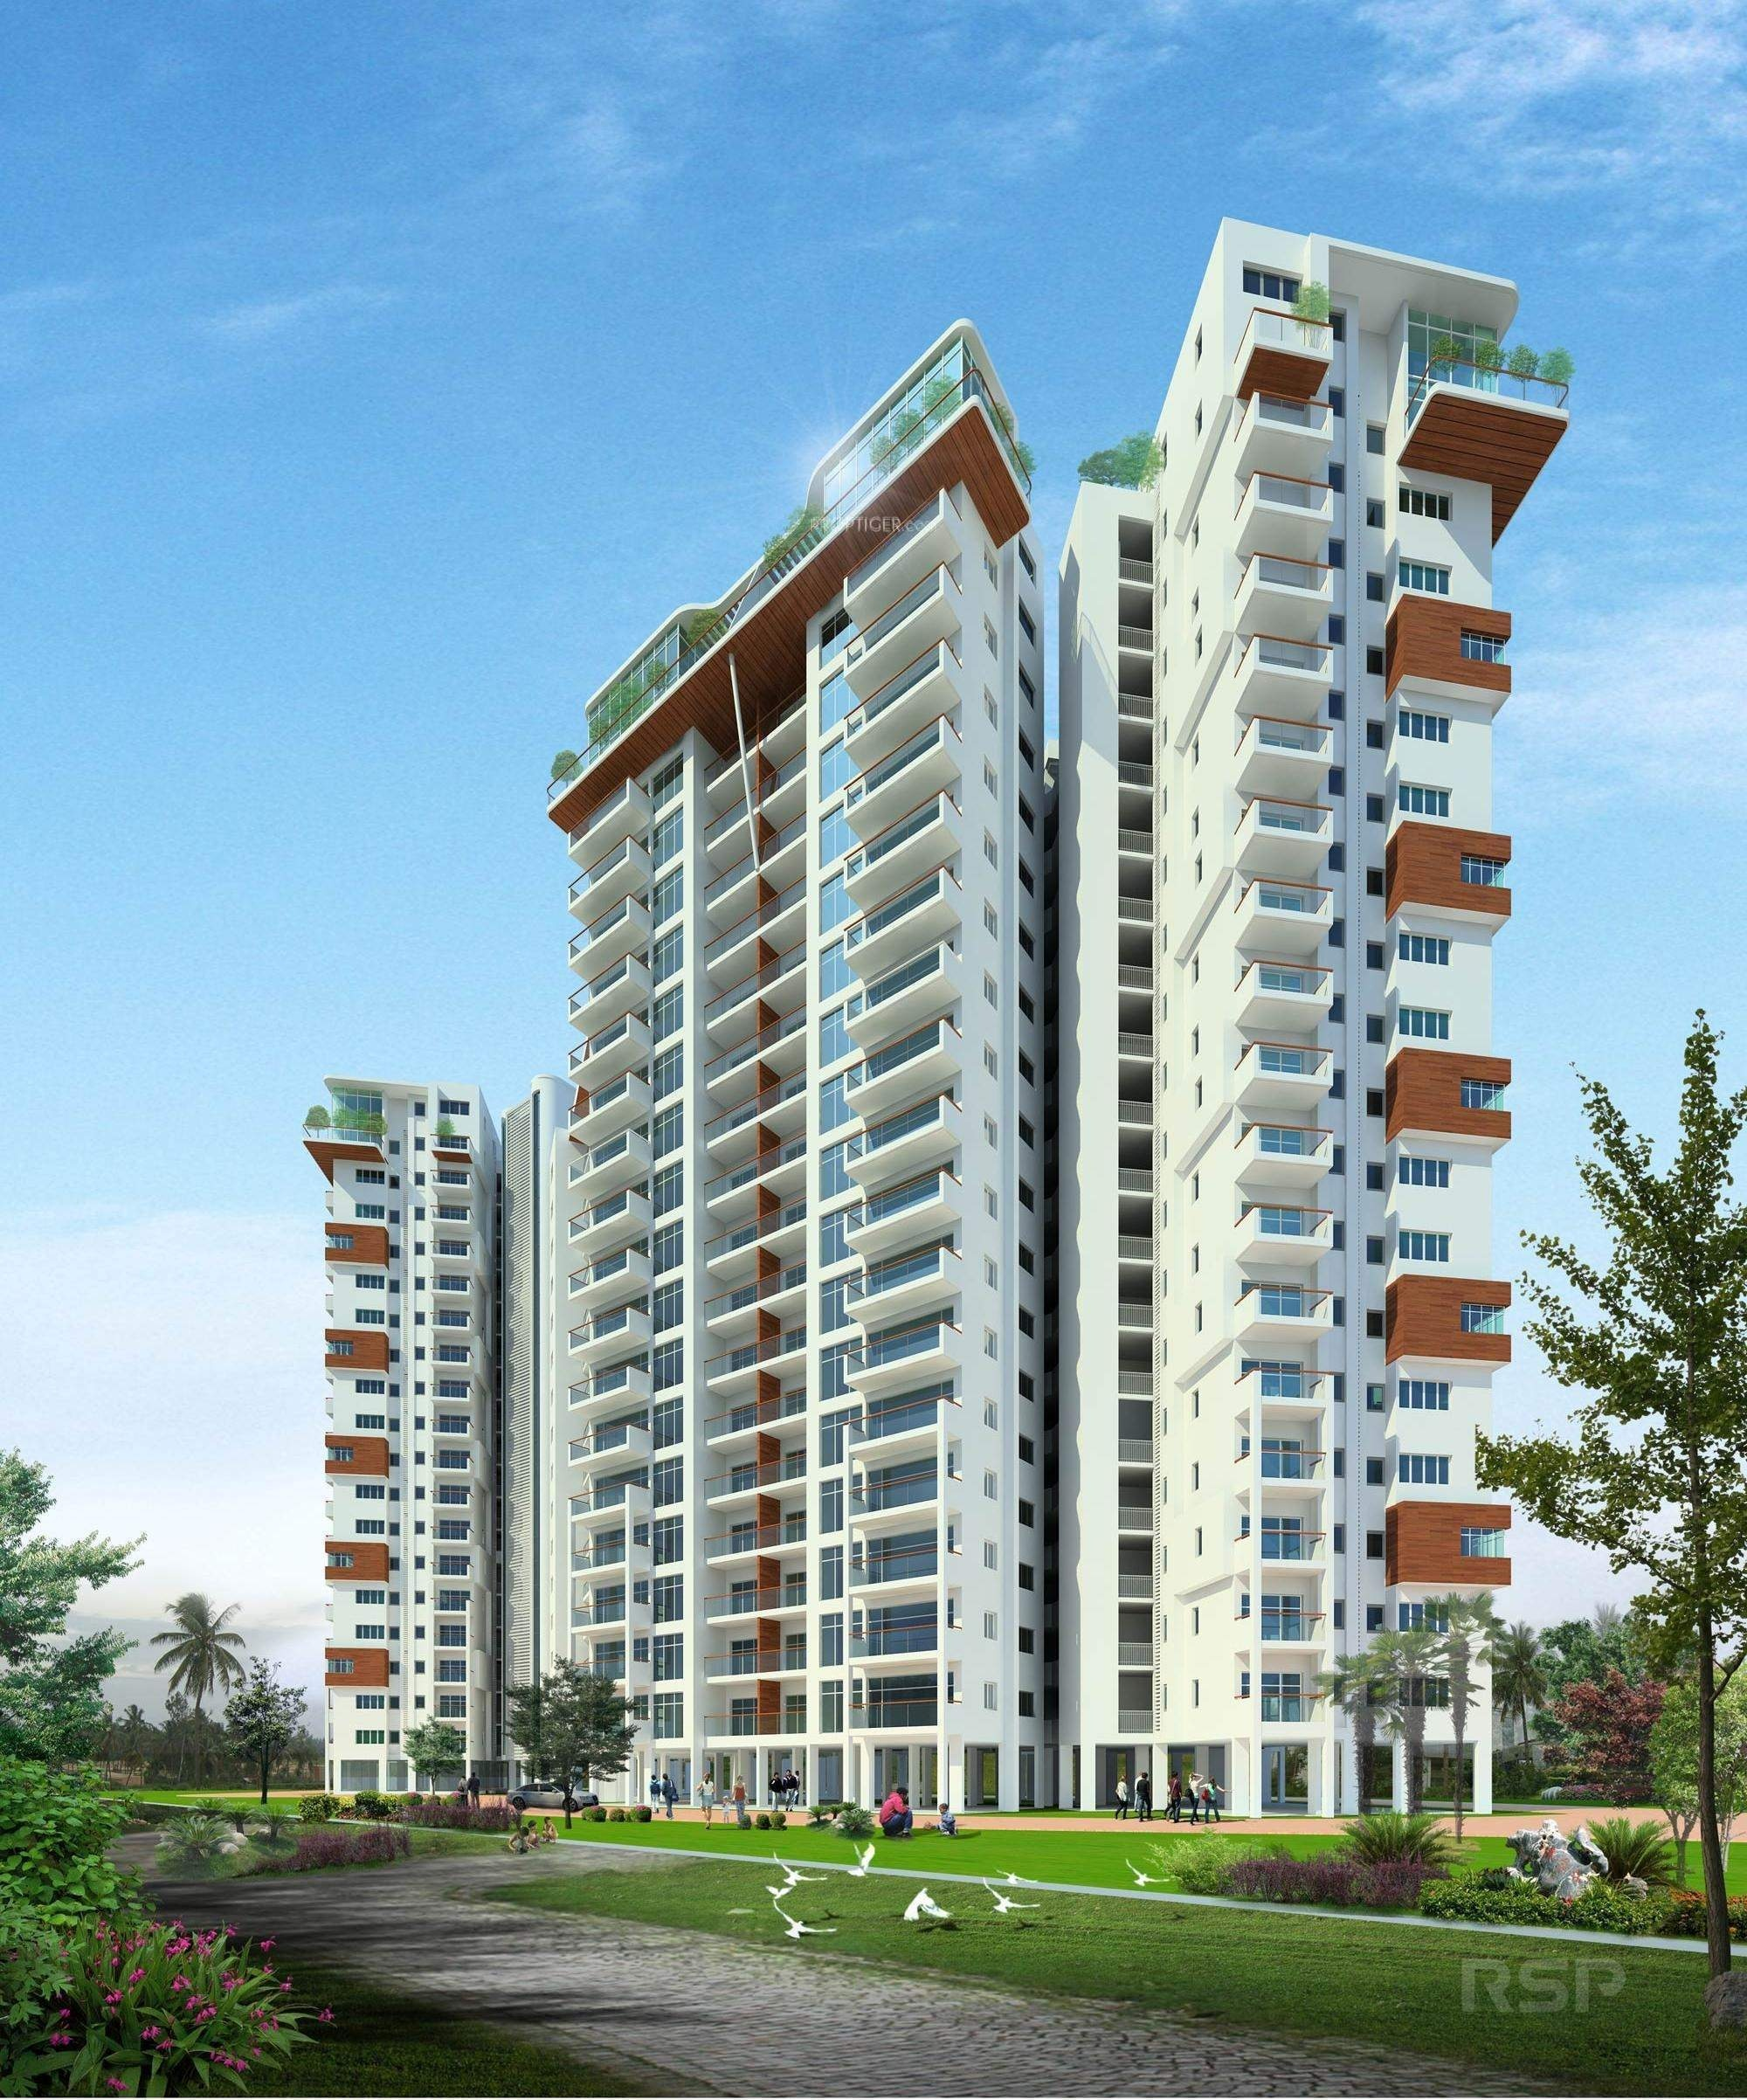 4180 Sq Ft 4 BHK 5T Apartment For Sale In Skylark Group